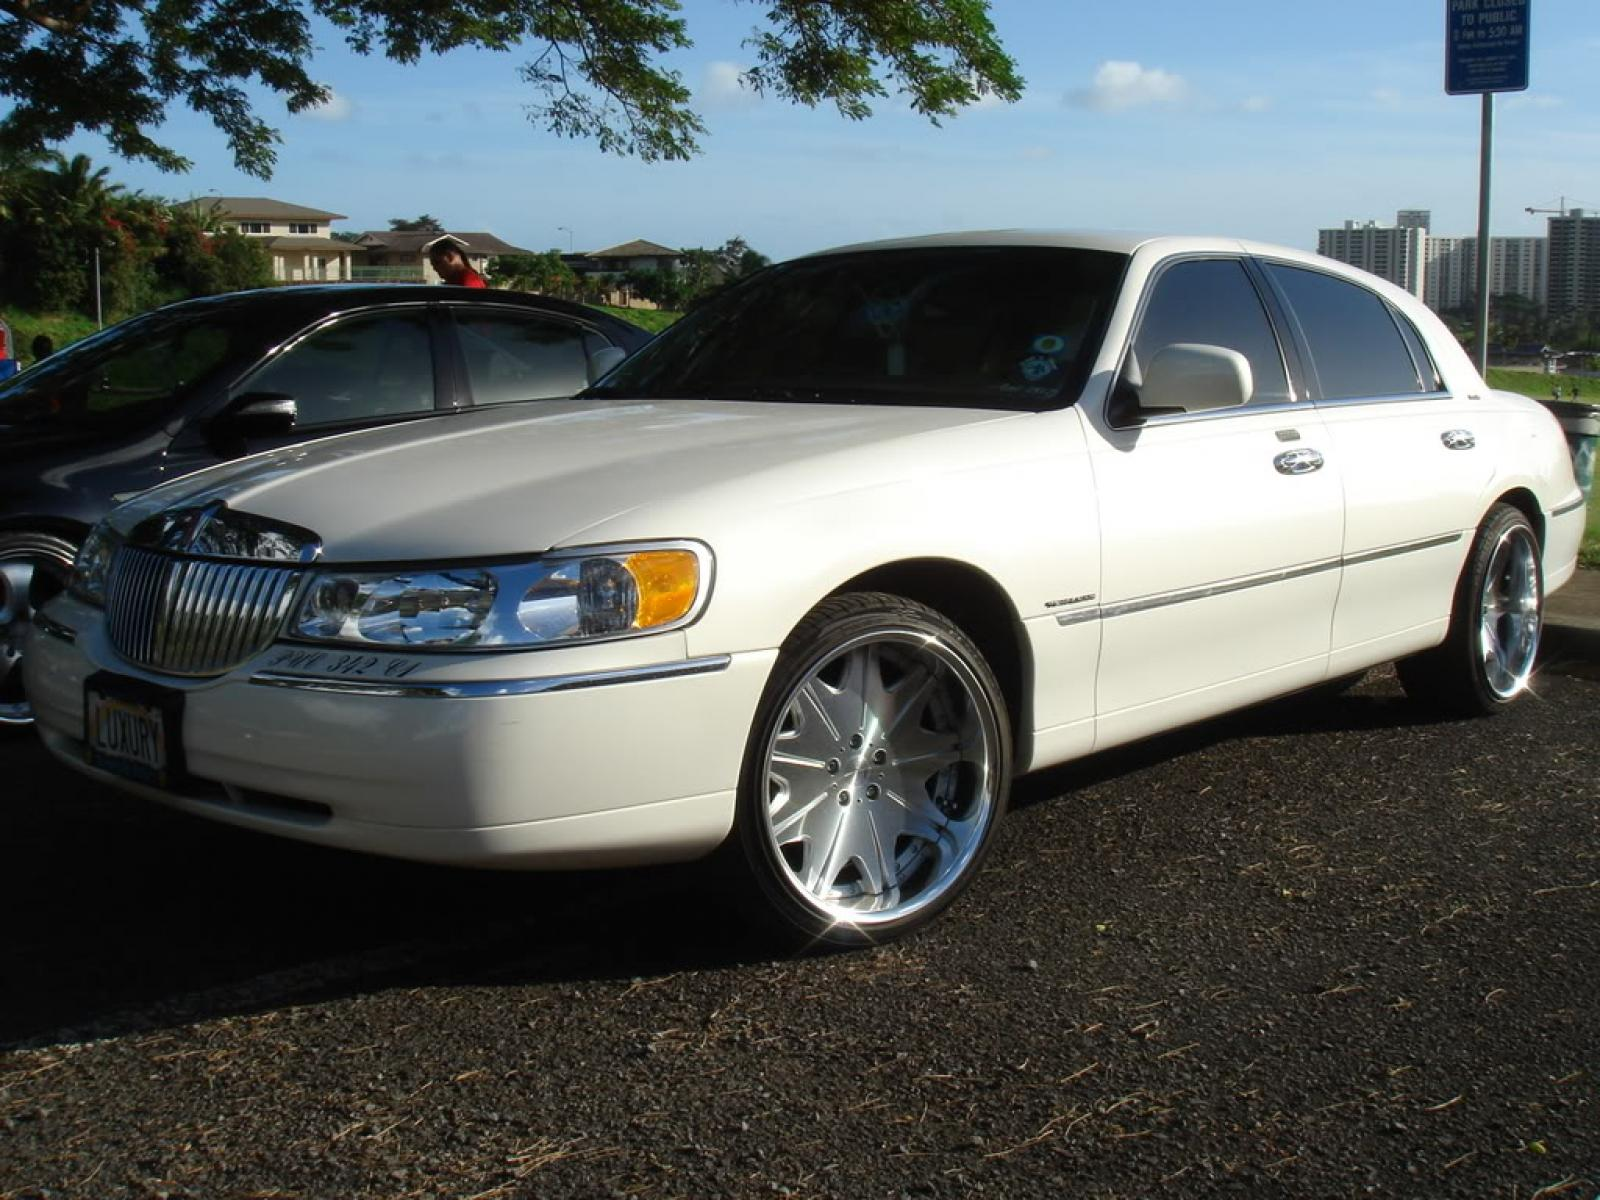 2000 Lincoln Town Car Information And Photos Zombiedrive